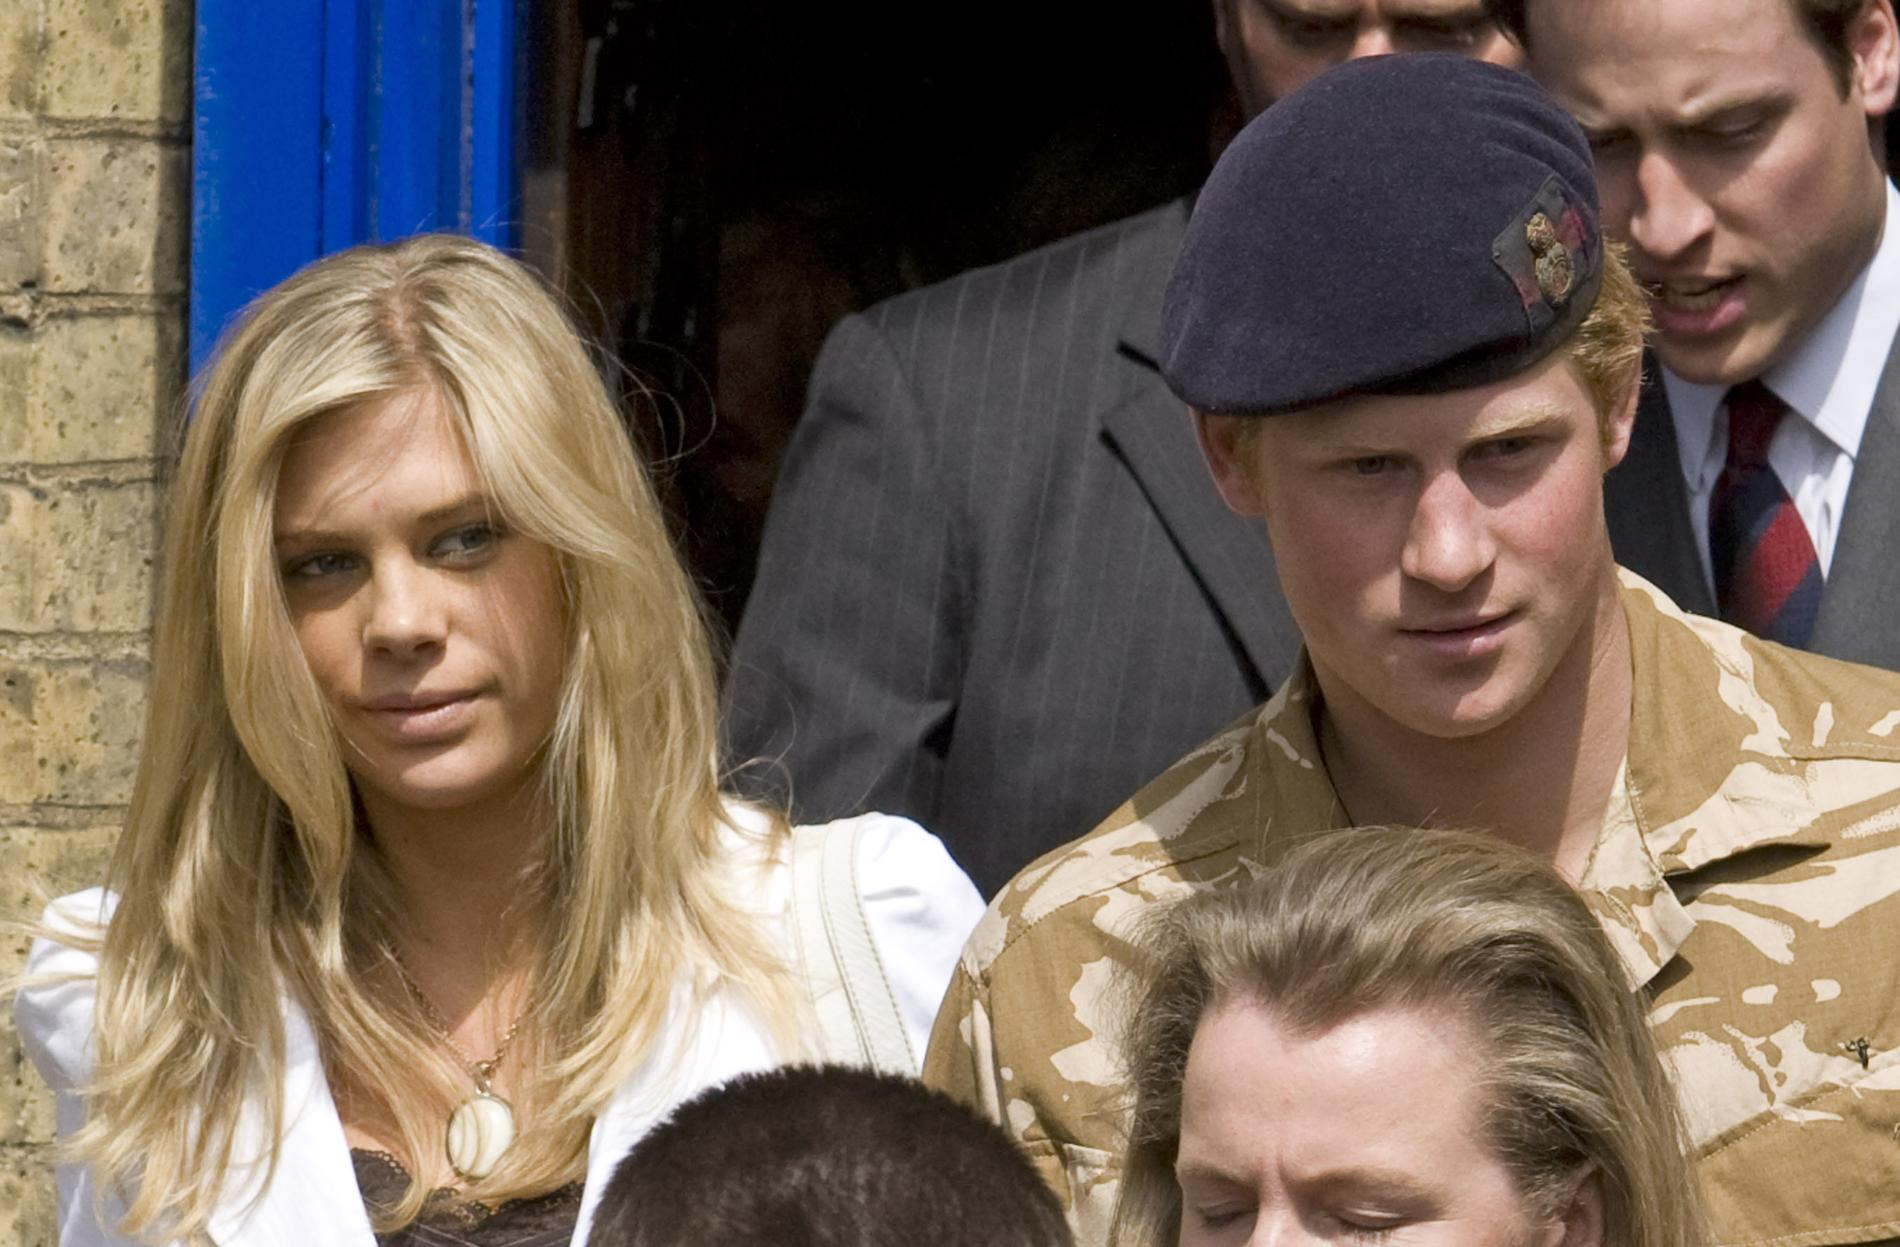 29/12/2008 Shirtless Prince Harry and Chelsy Davy in